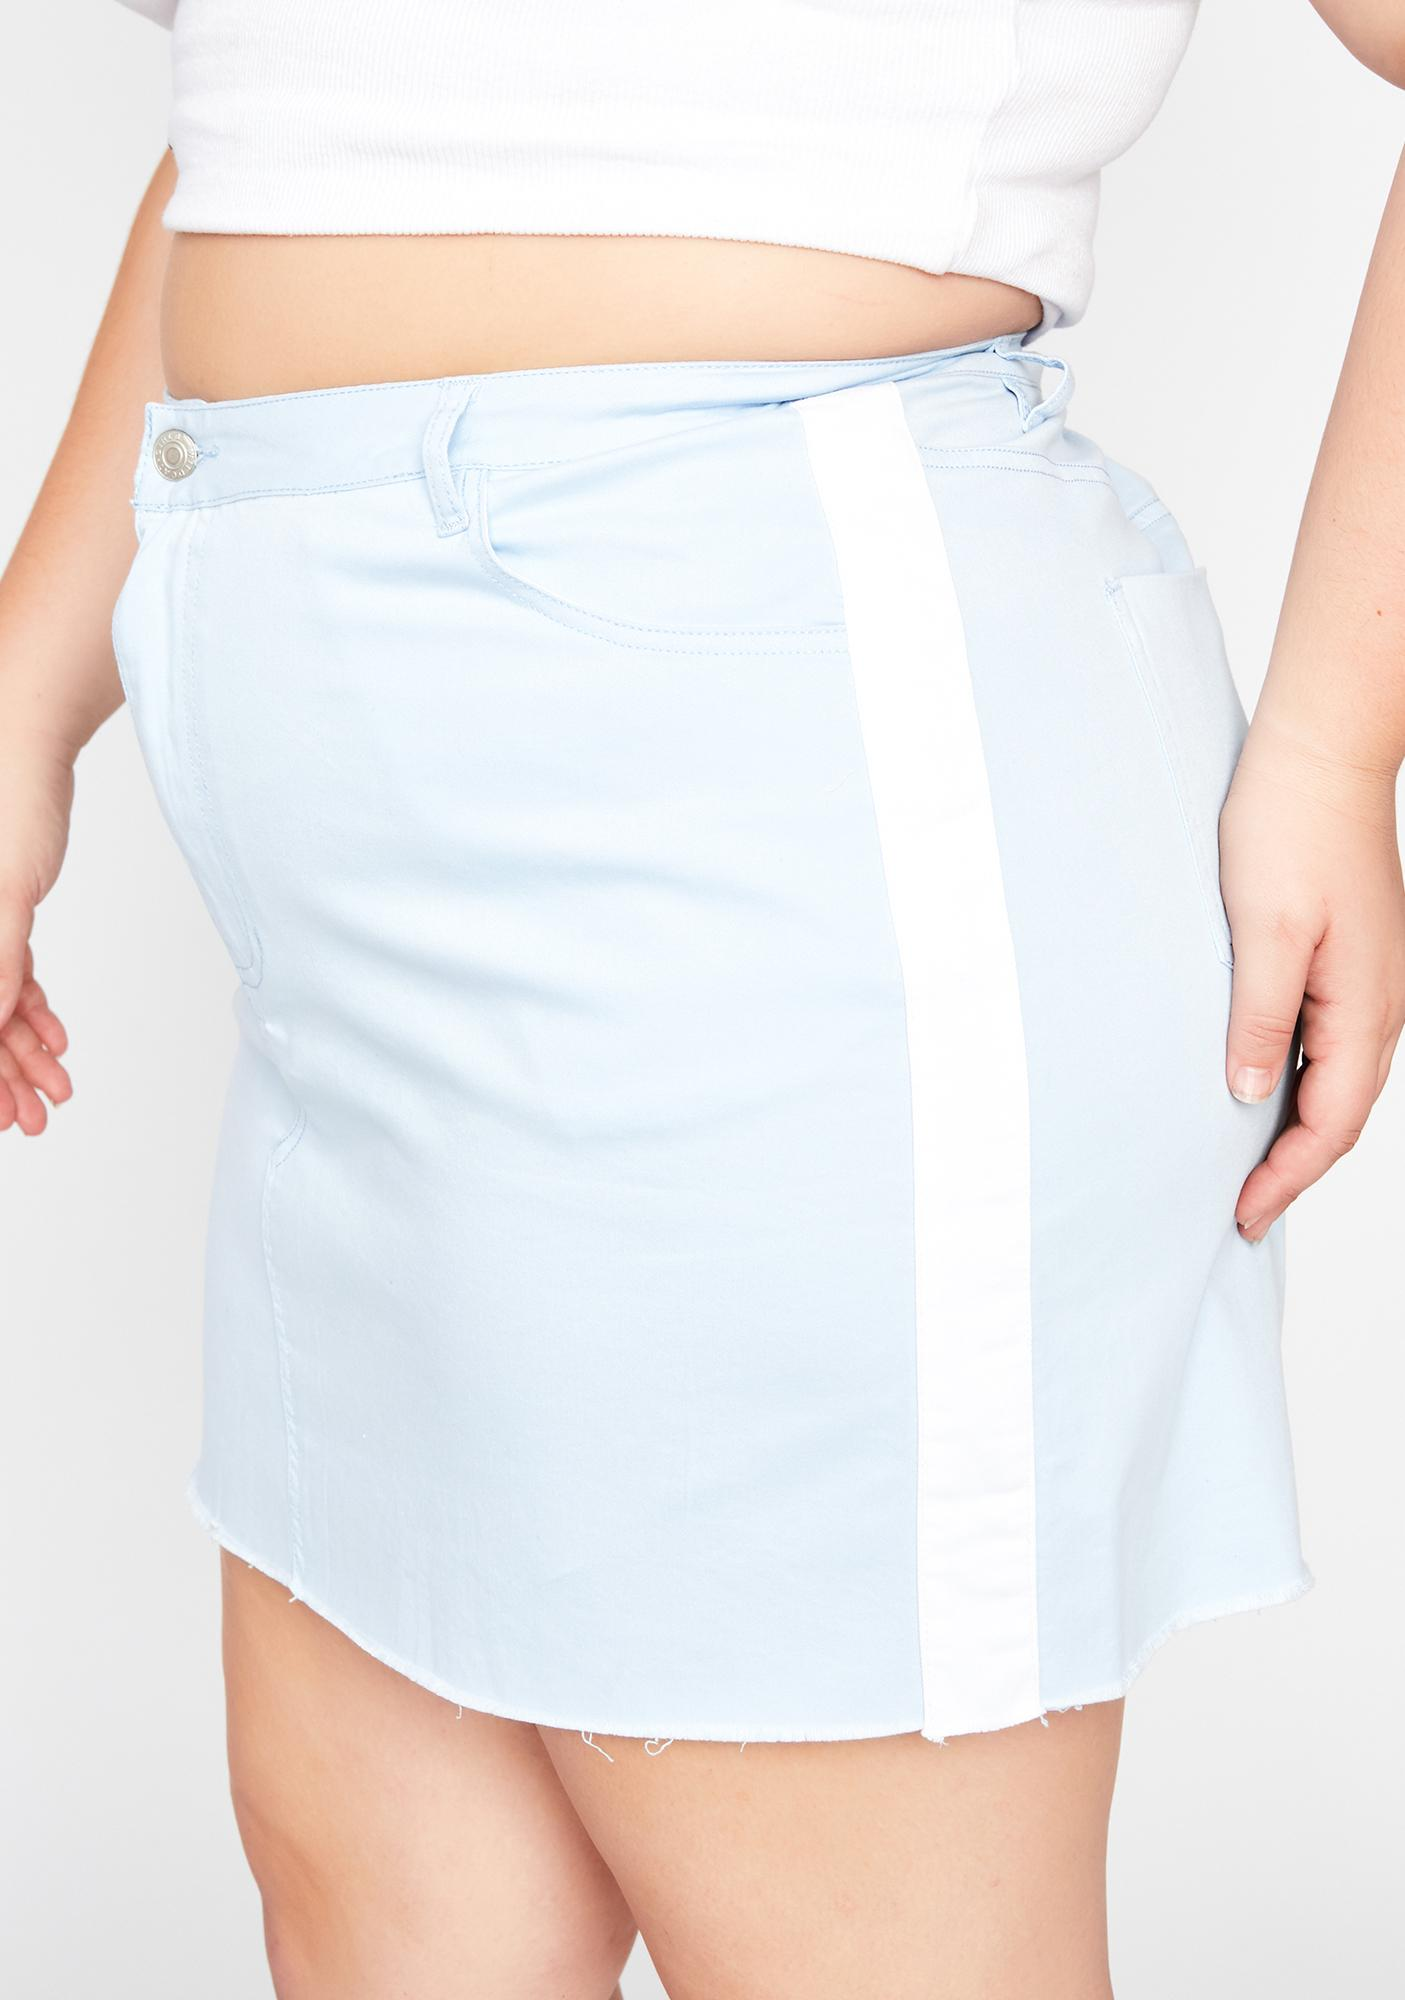 Sky Miss Boutique Bombshell Mini Skirt